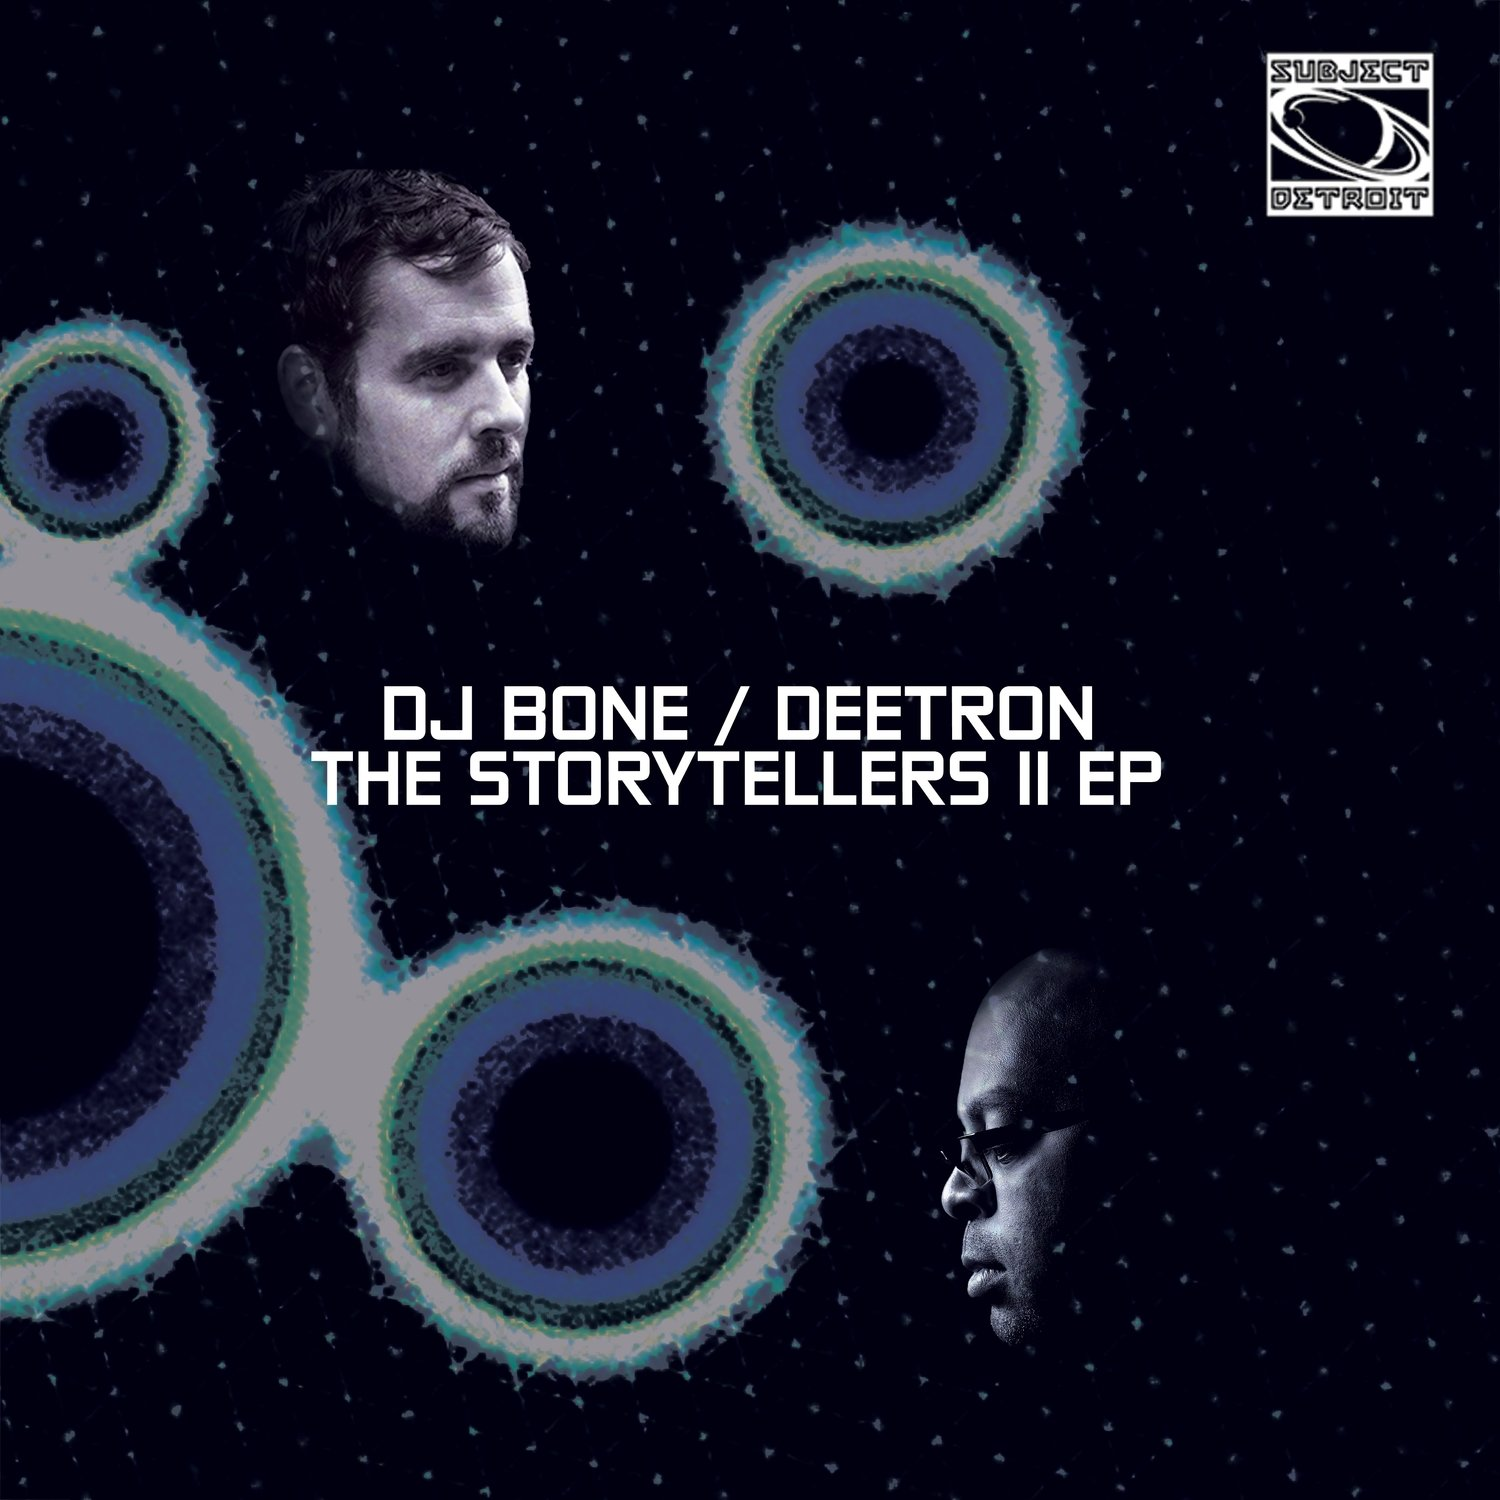 SUB045 | THE STORYTELLERS EP 2 | DJ BONE & DEETRON **WAV